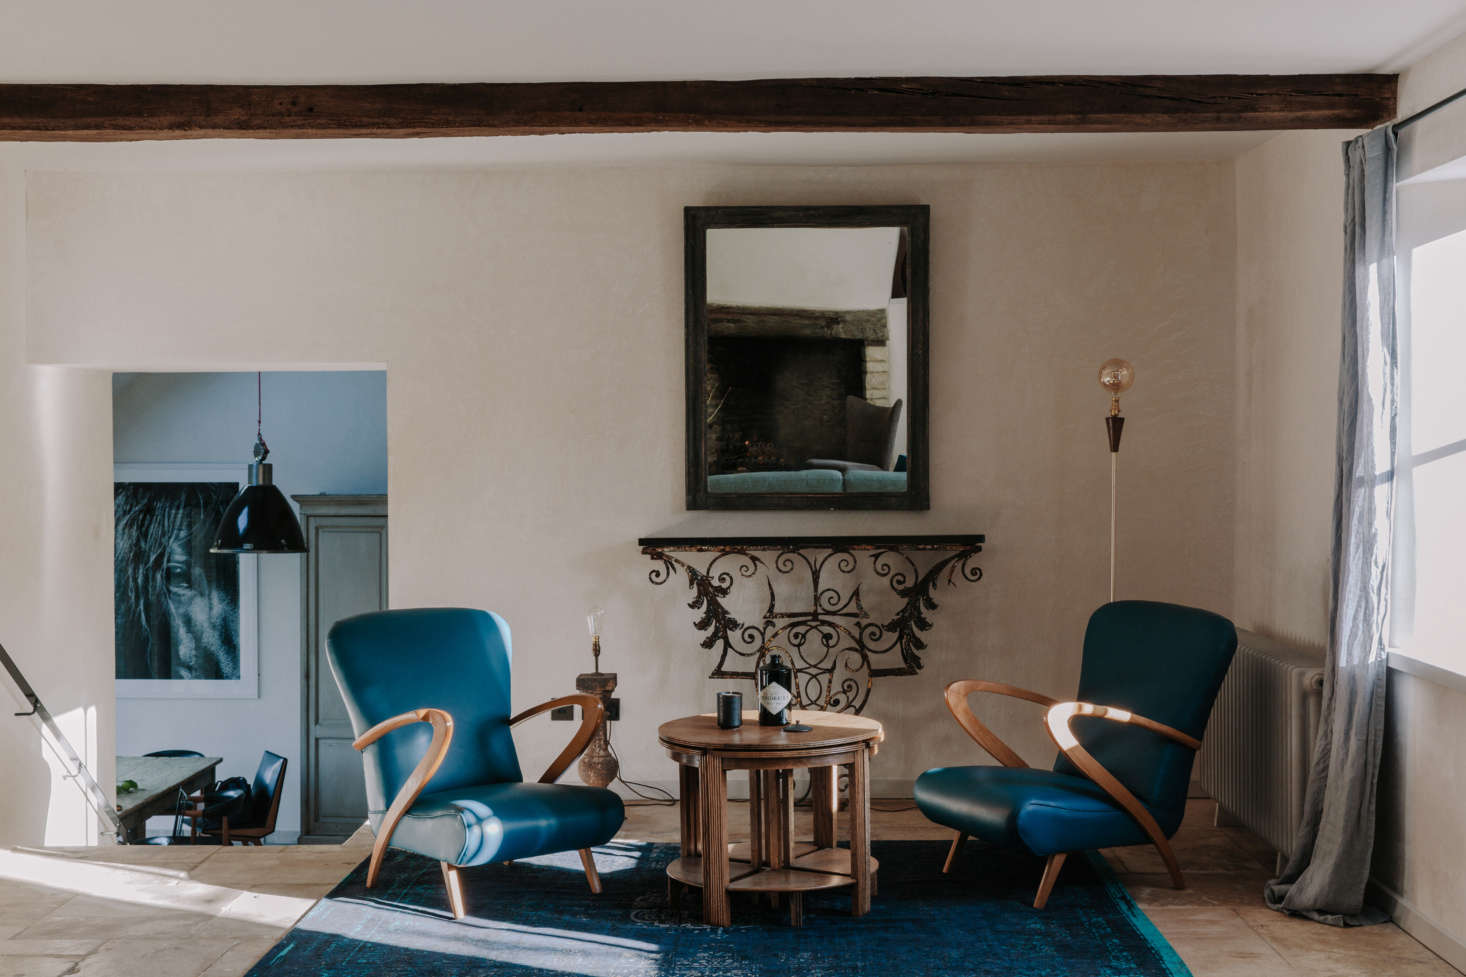 A sitting area in shades of blue.